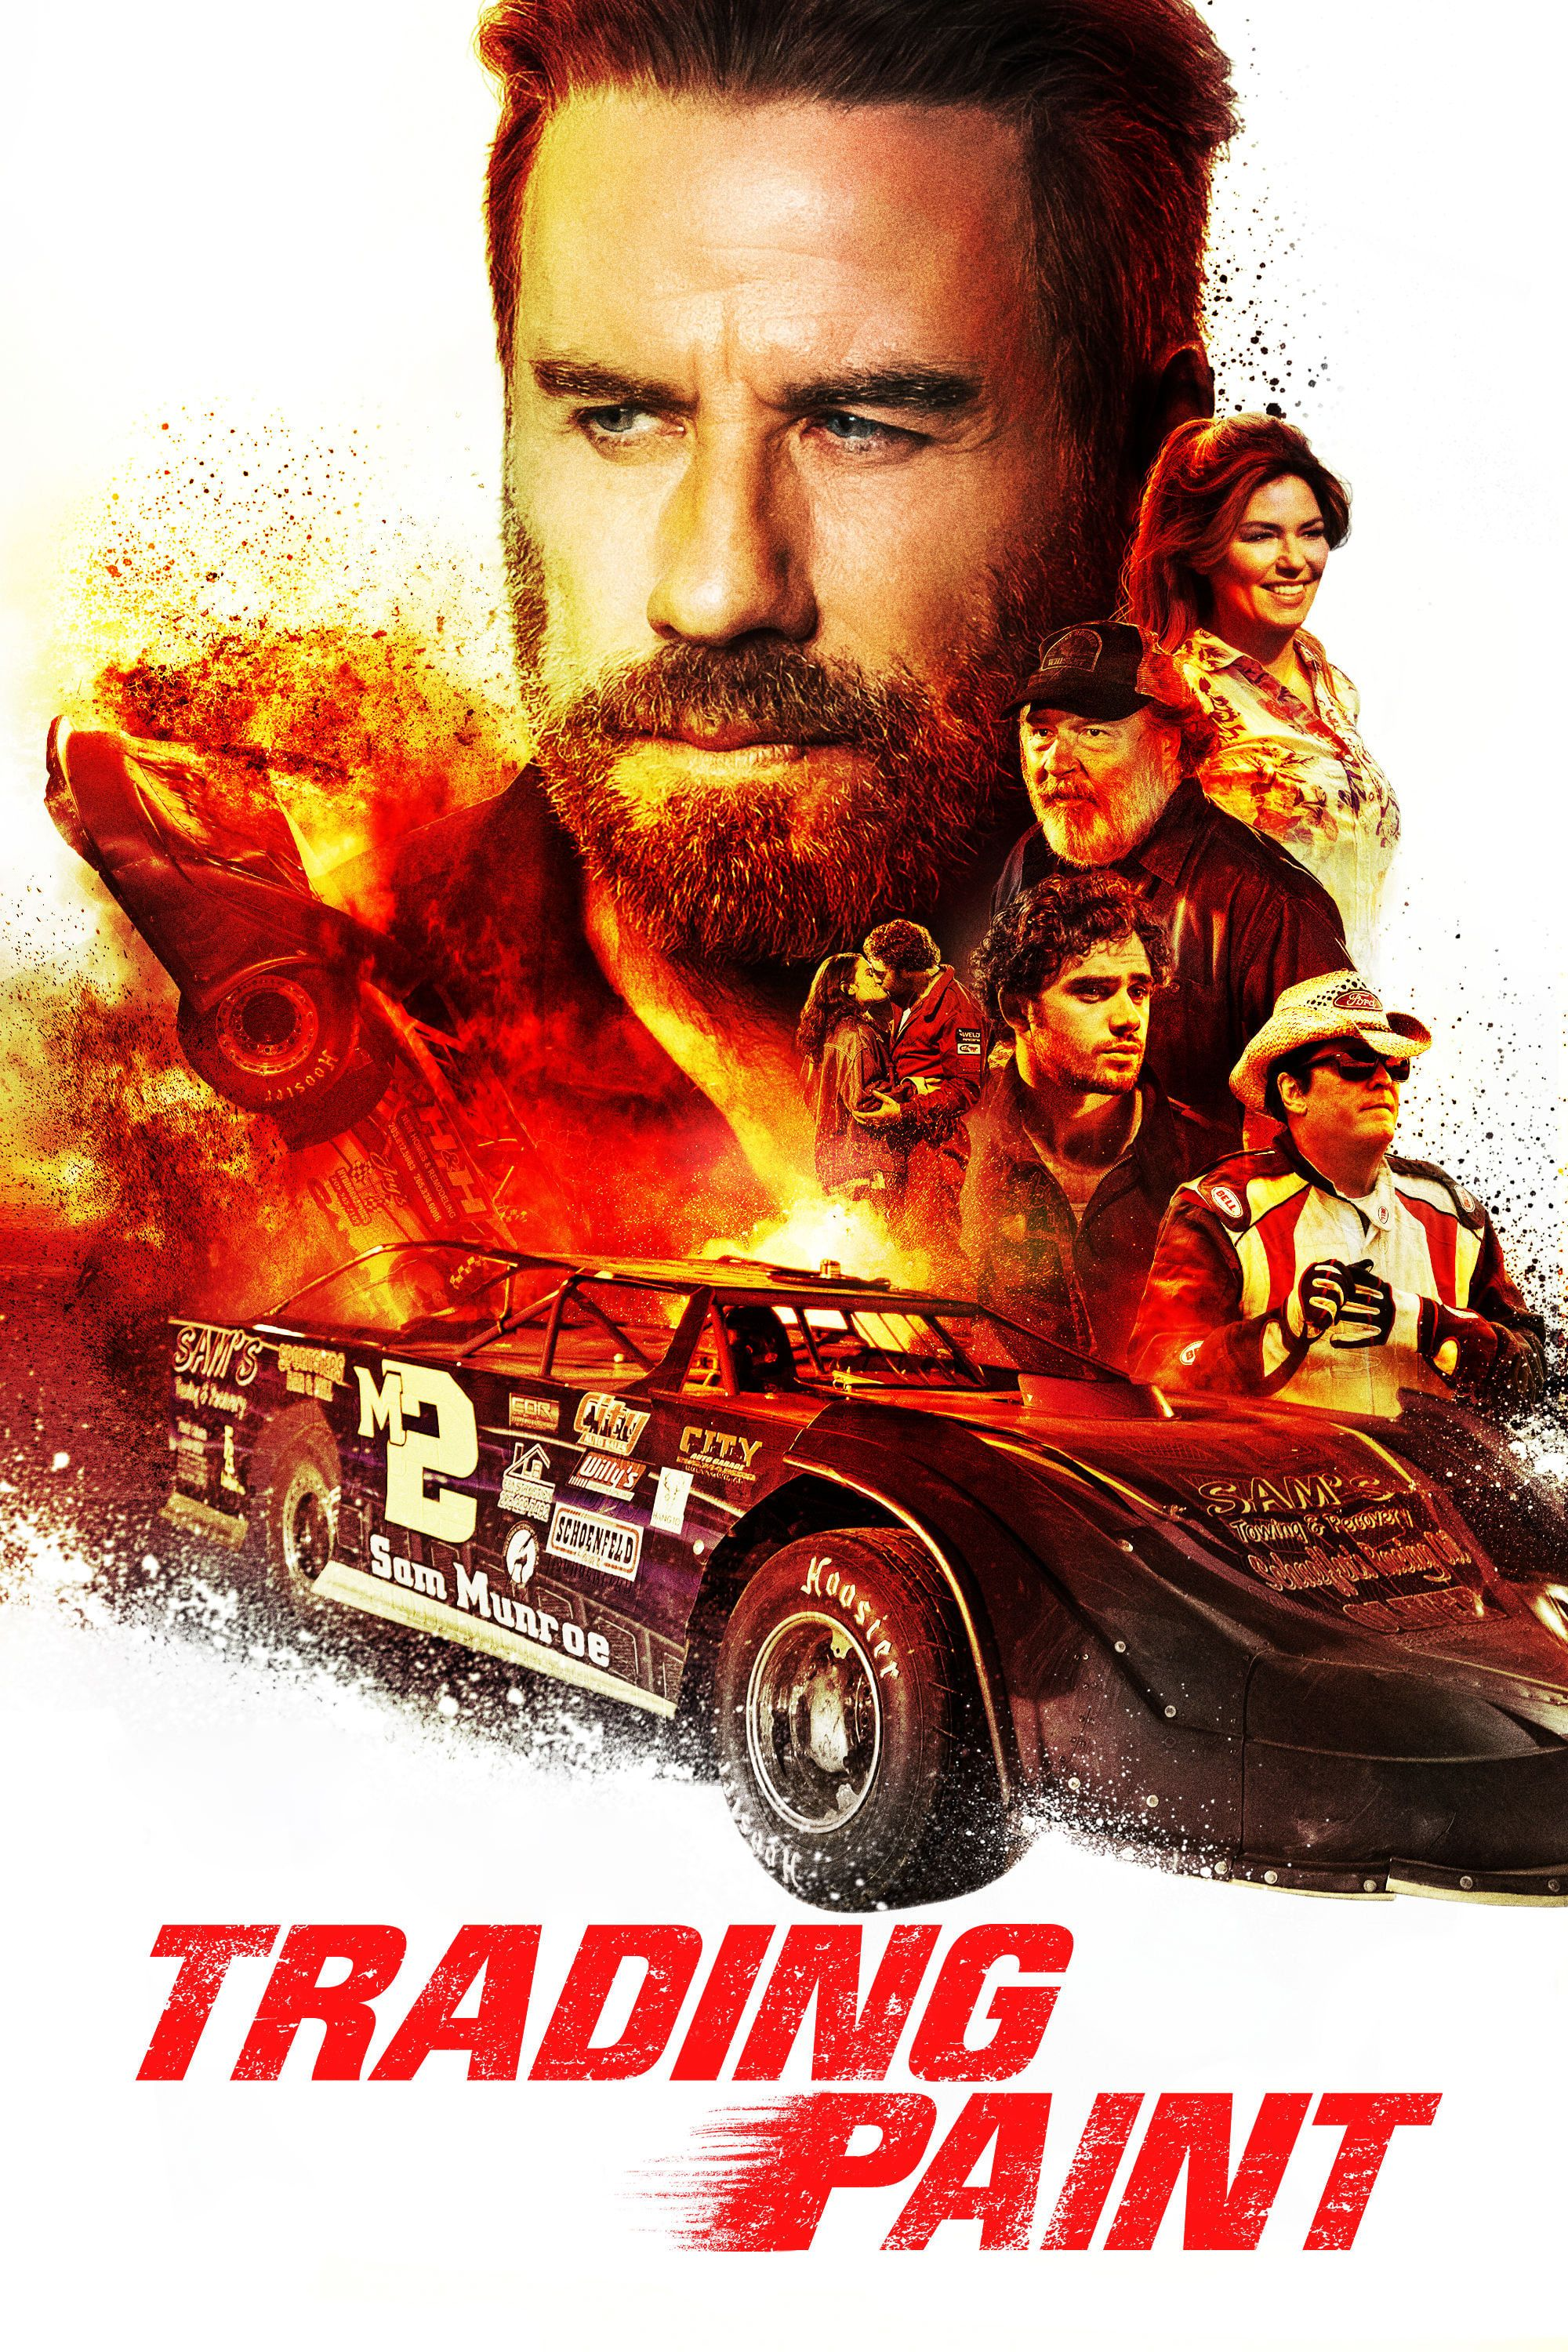 Ver Pelicula Trading Paint 2019 The Love And Rivalry Among A Racing Veteran And His Fellow Driver Peliculas Completas Ver Peliculas Completas Peliculas